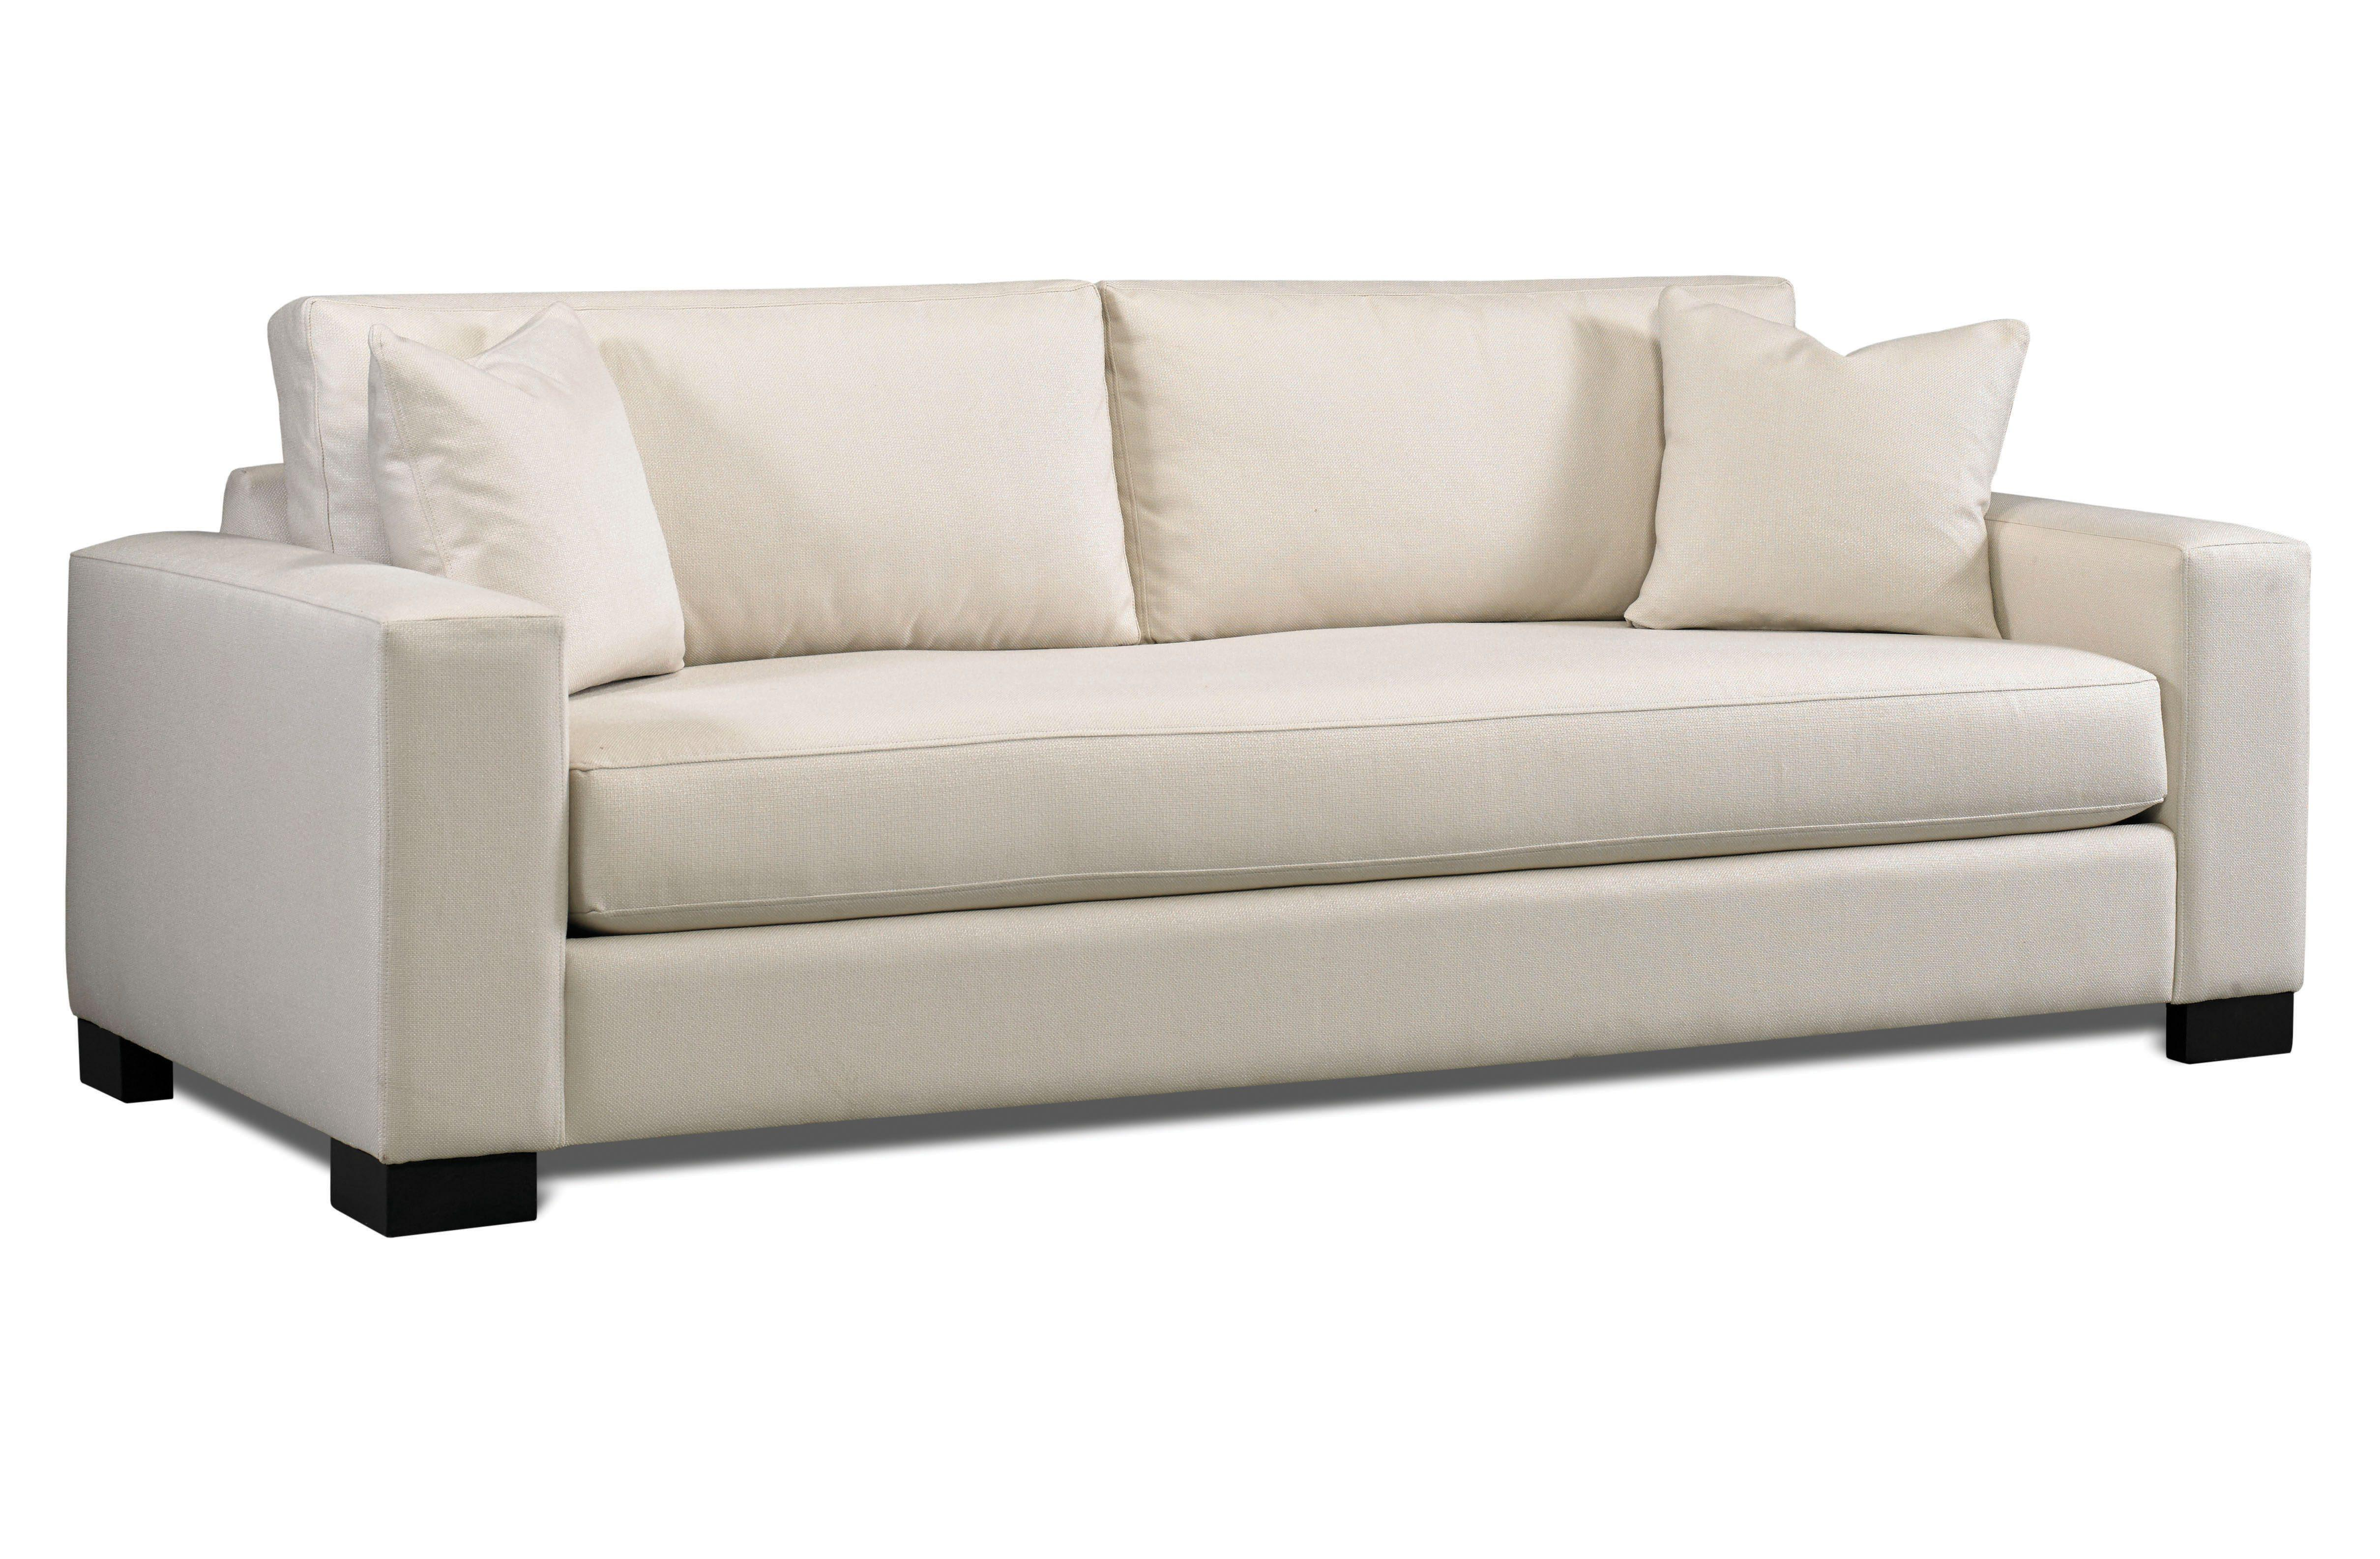 dalton sofa leon s ethan allen sleeper sofas 2667 s2 precedent furniture connor mid length